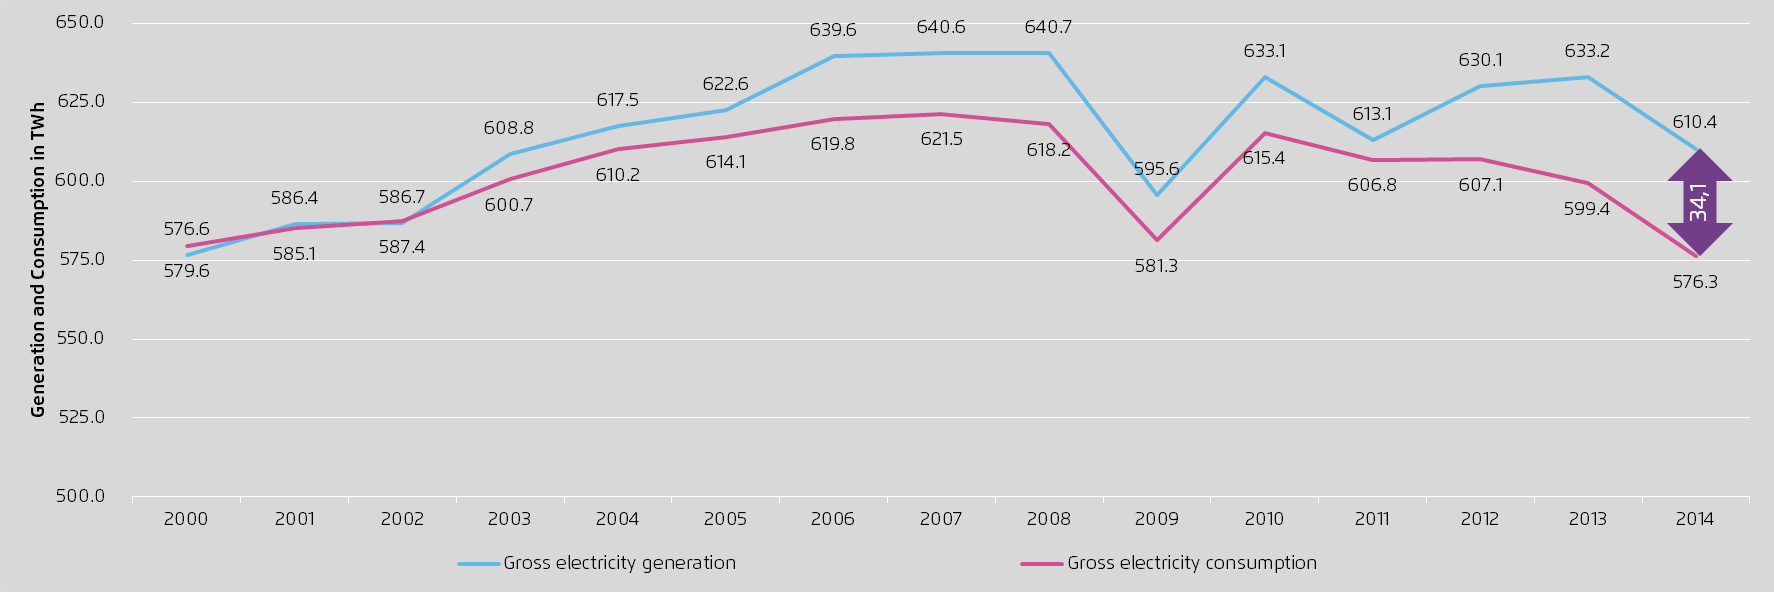 The gap between electricity generation and demand is widening since 2001: Germany is power